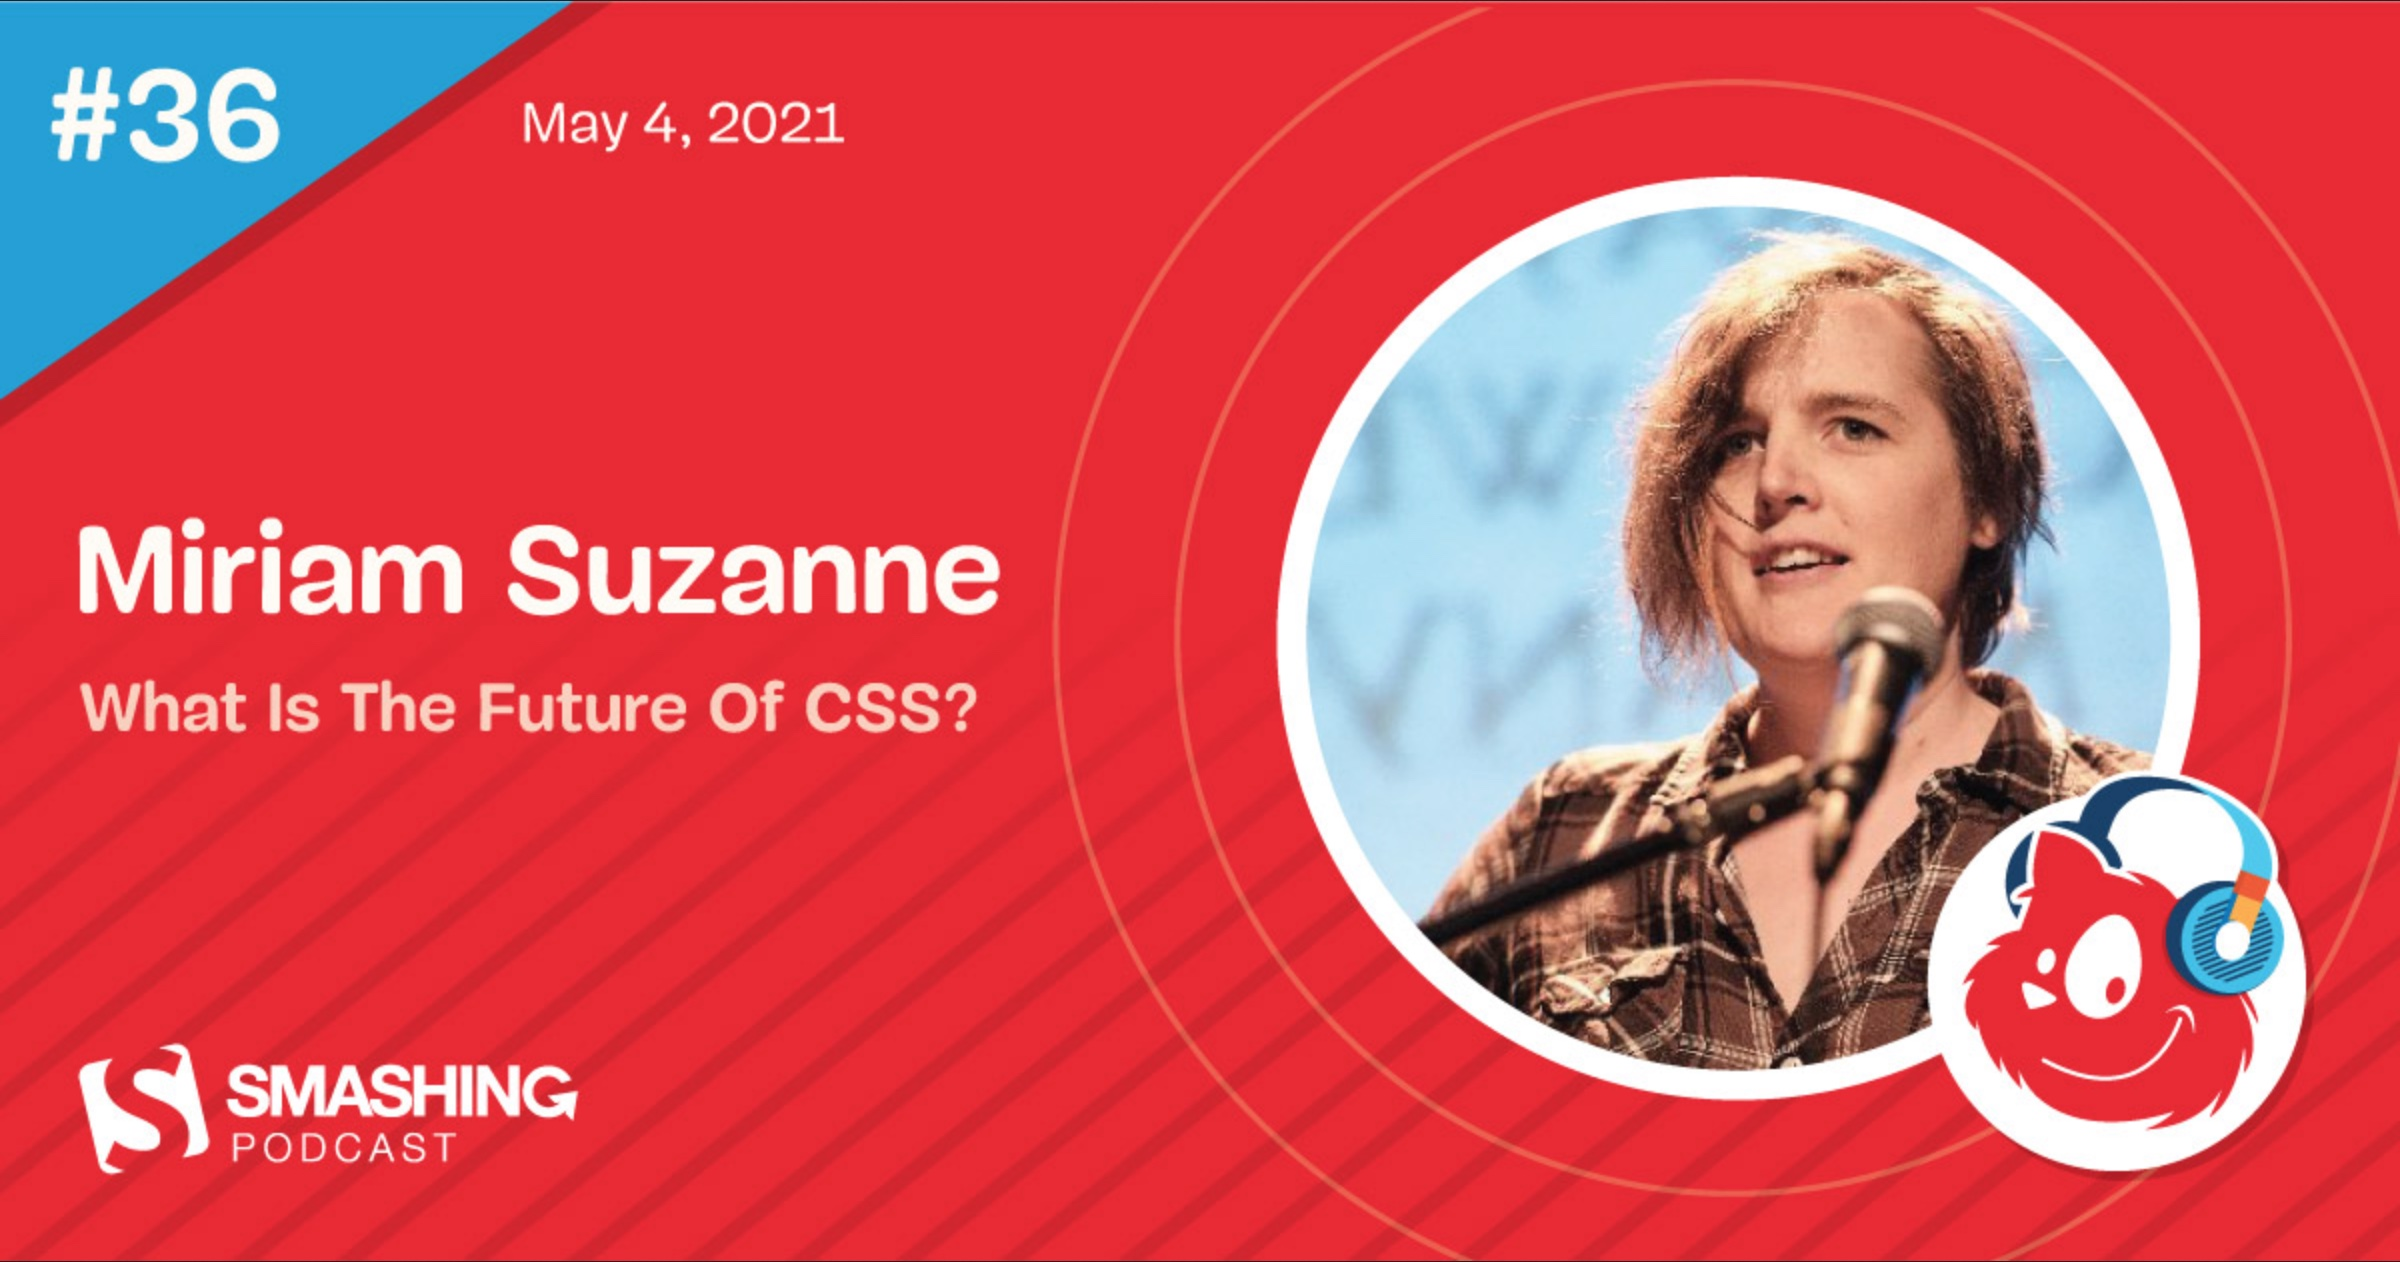 Smashing Podcast #36, Miriam Suzanne, What is the future of CSS?